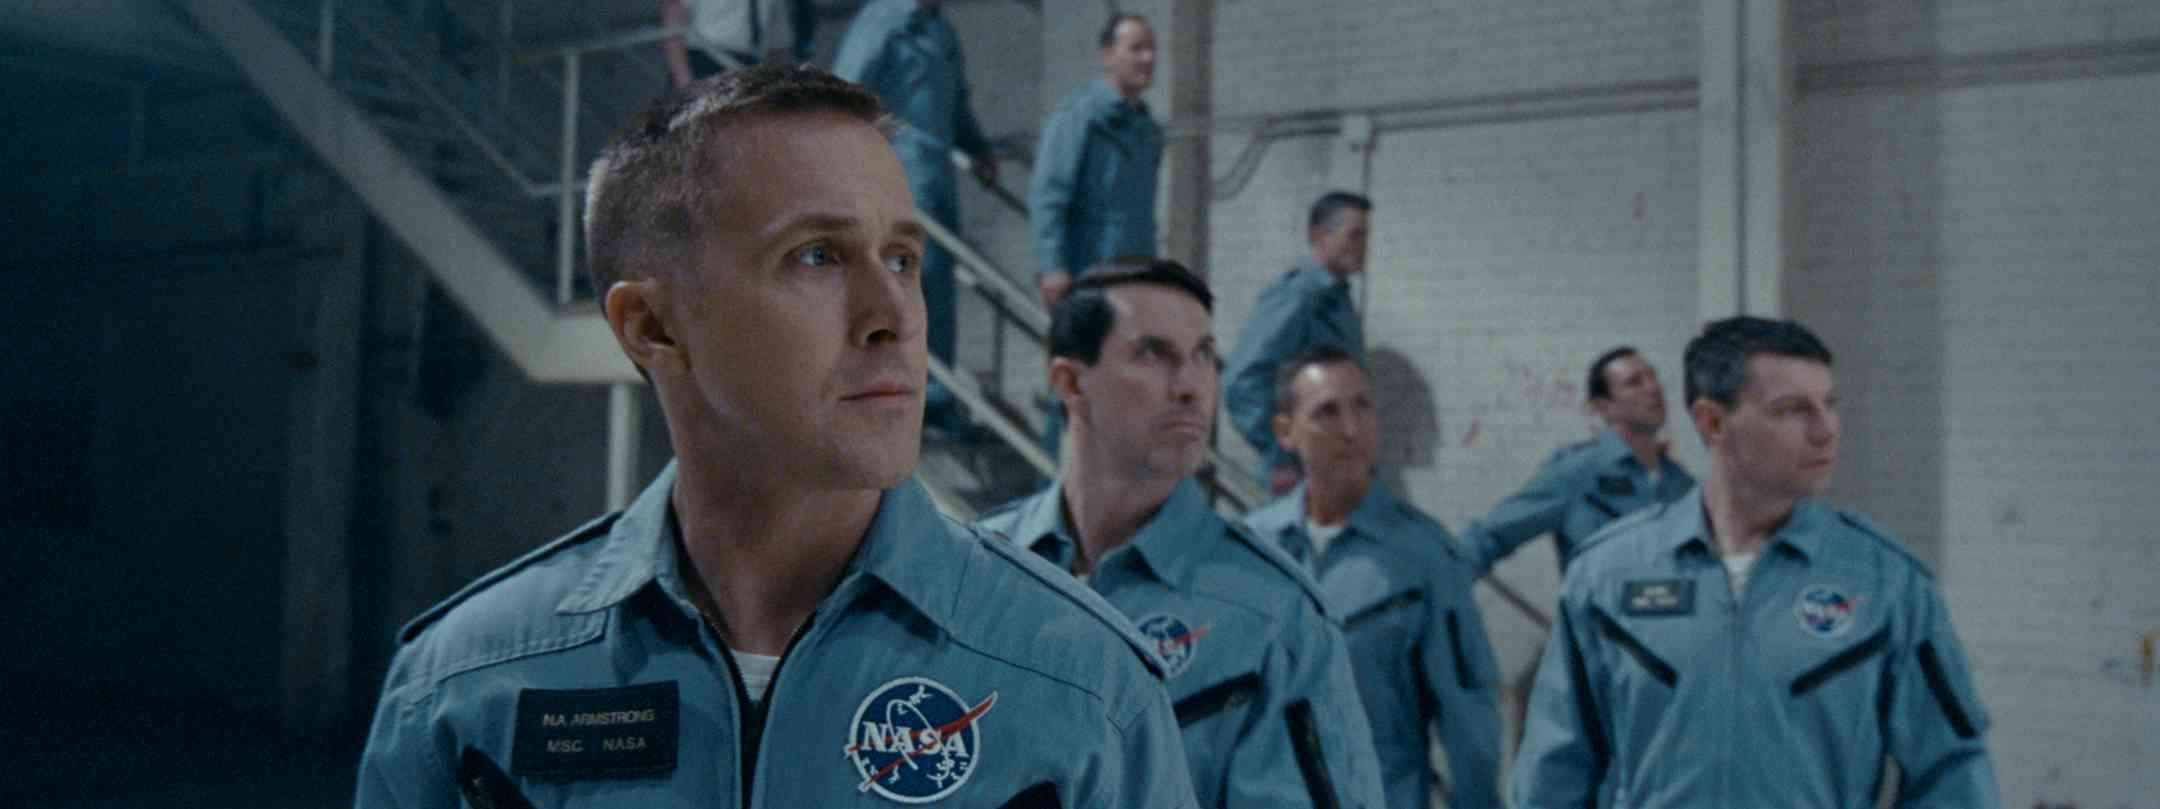 Ryan Gosling as Neil Armstrong in First Man. Courtesy Universal Pictures.